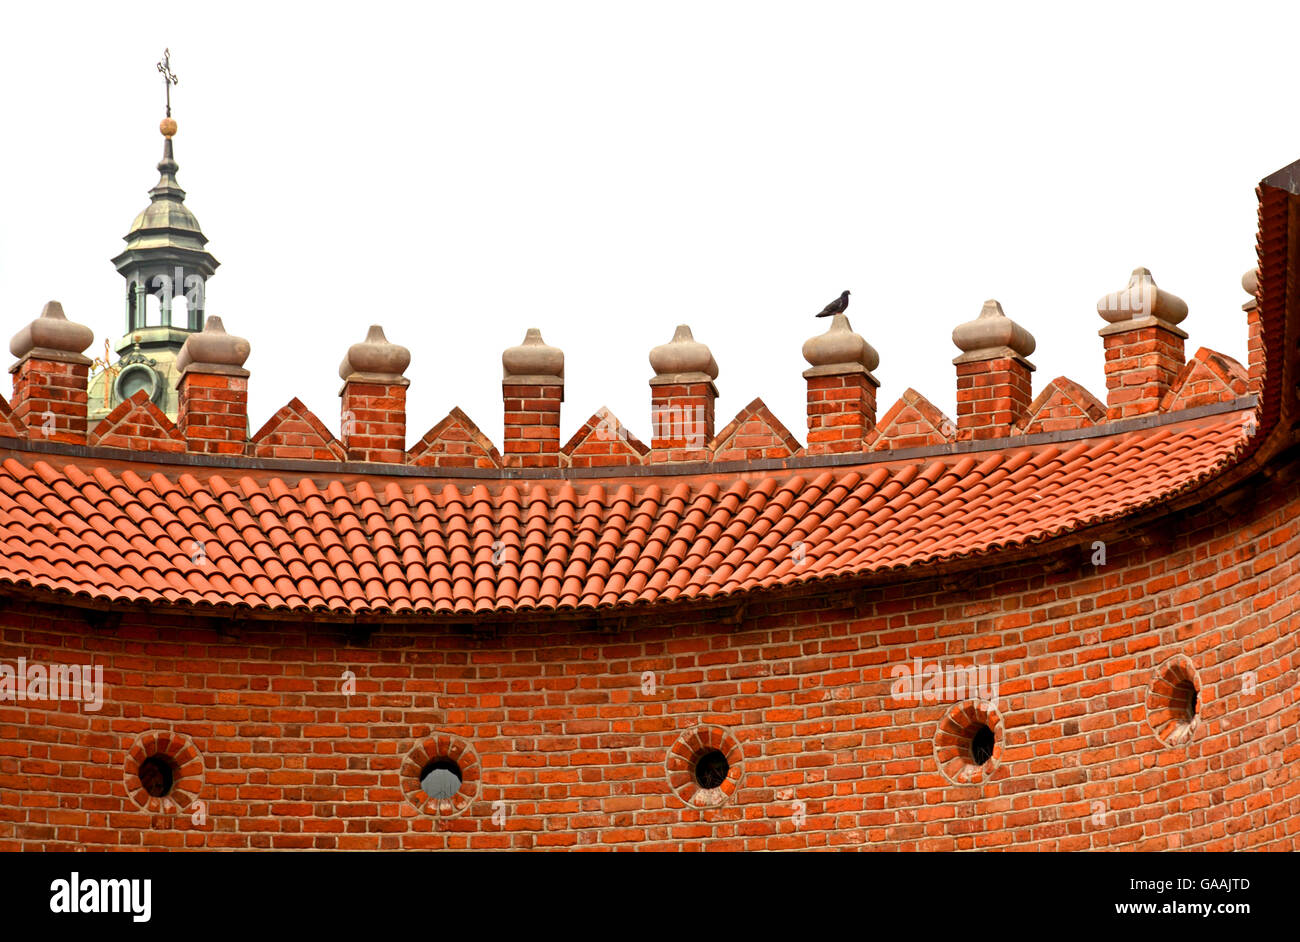 Barbican fortification Warsaw Poland - Stock Image